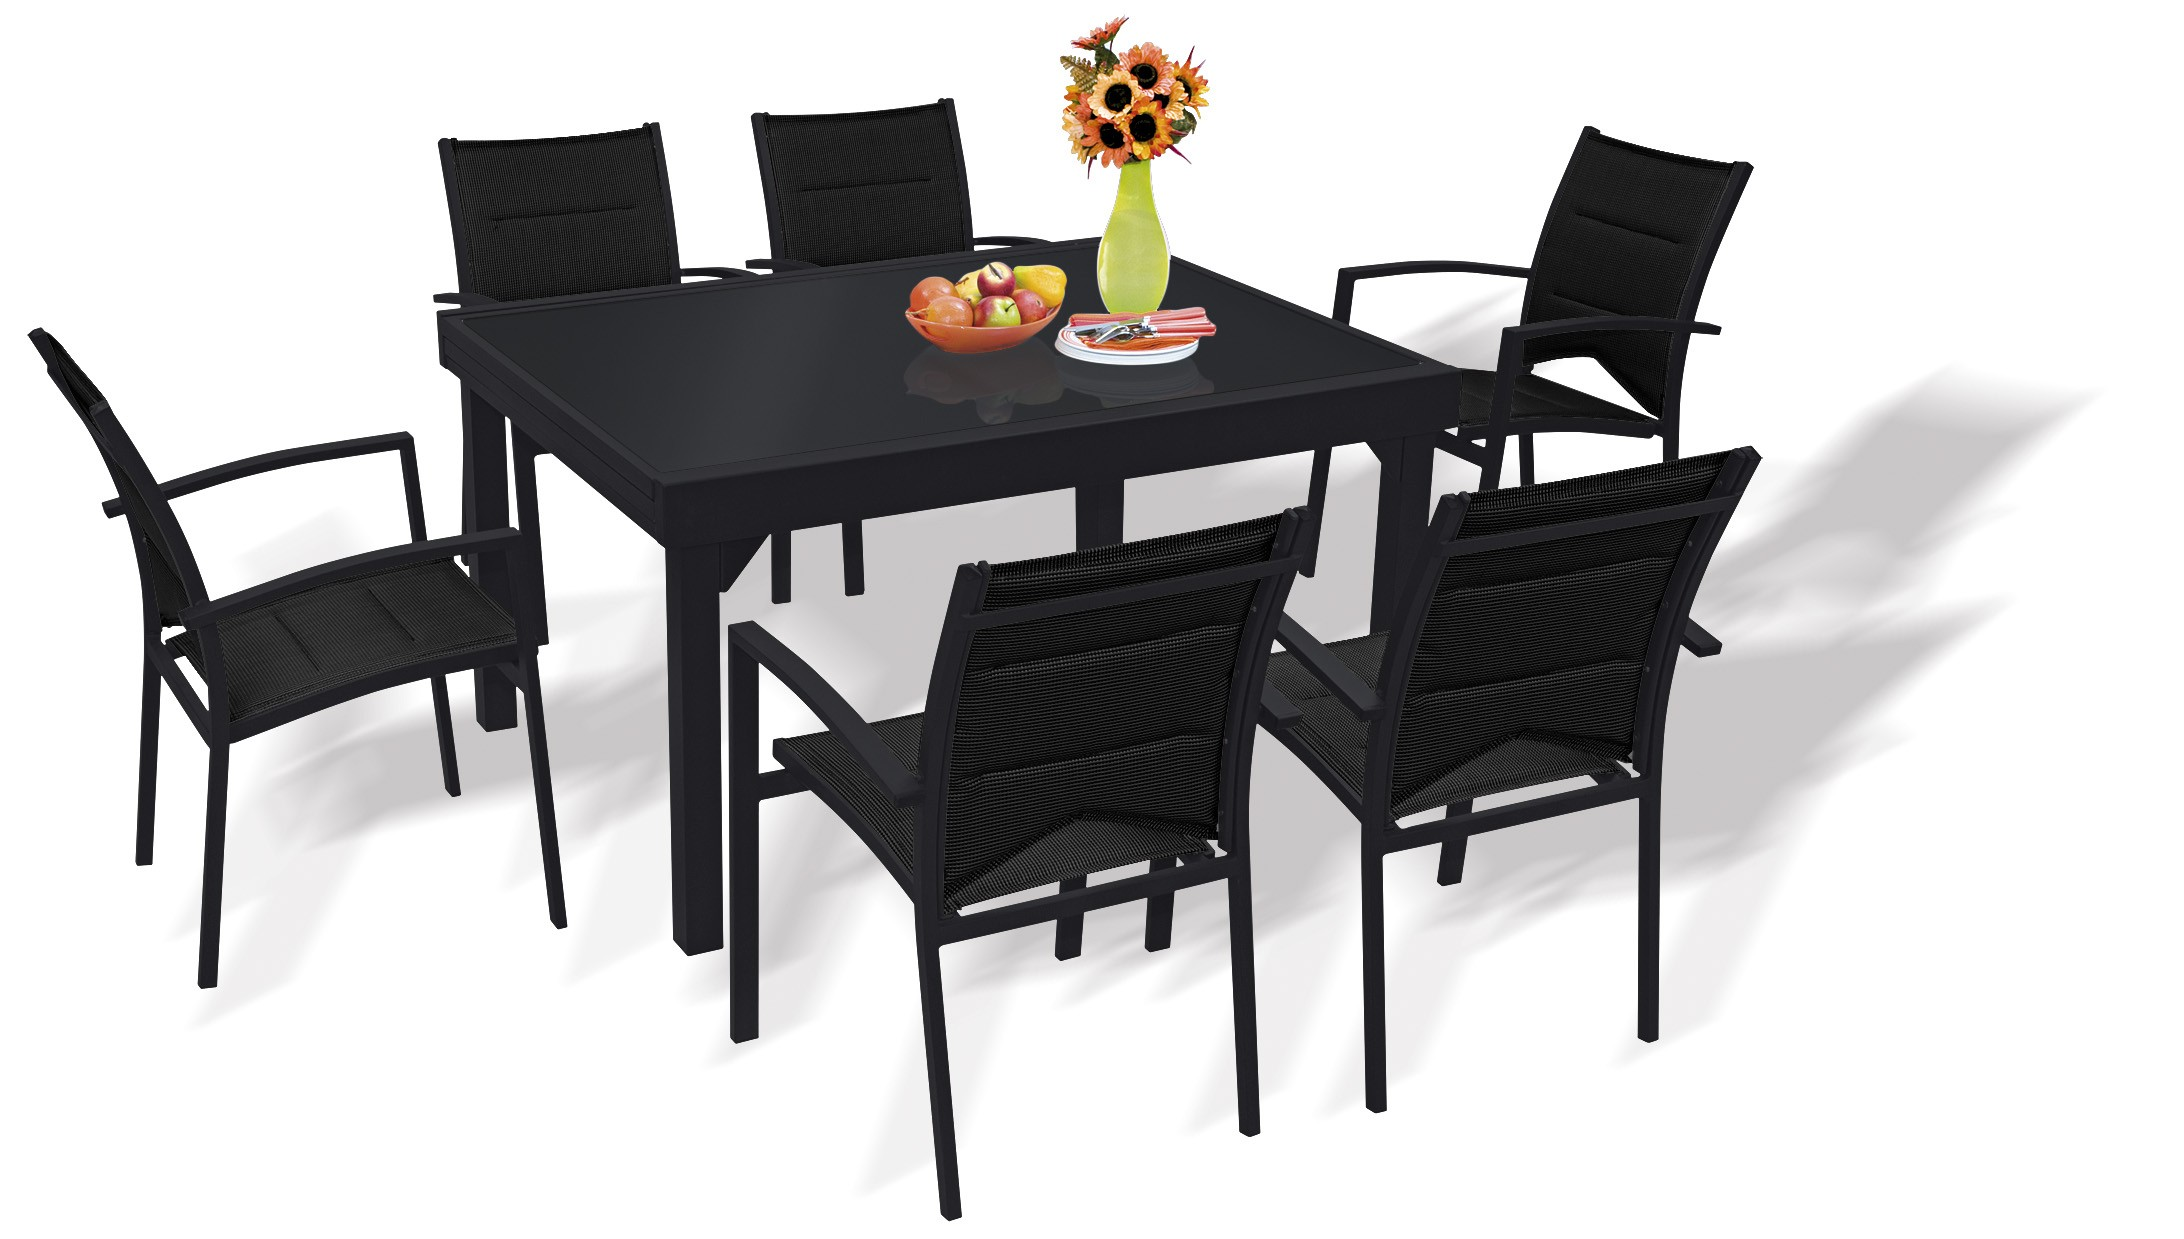 table carre 12 personnes top ikea tables salle manger with table carre 12 personnes awesome. Black Bedroom Furniture Sets. Home Design Ideas